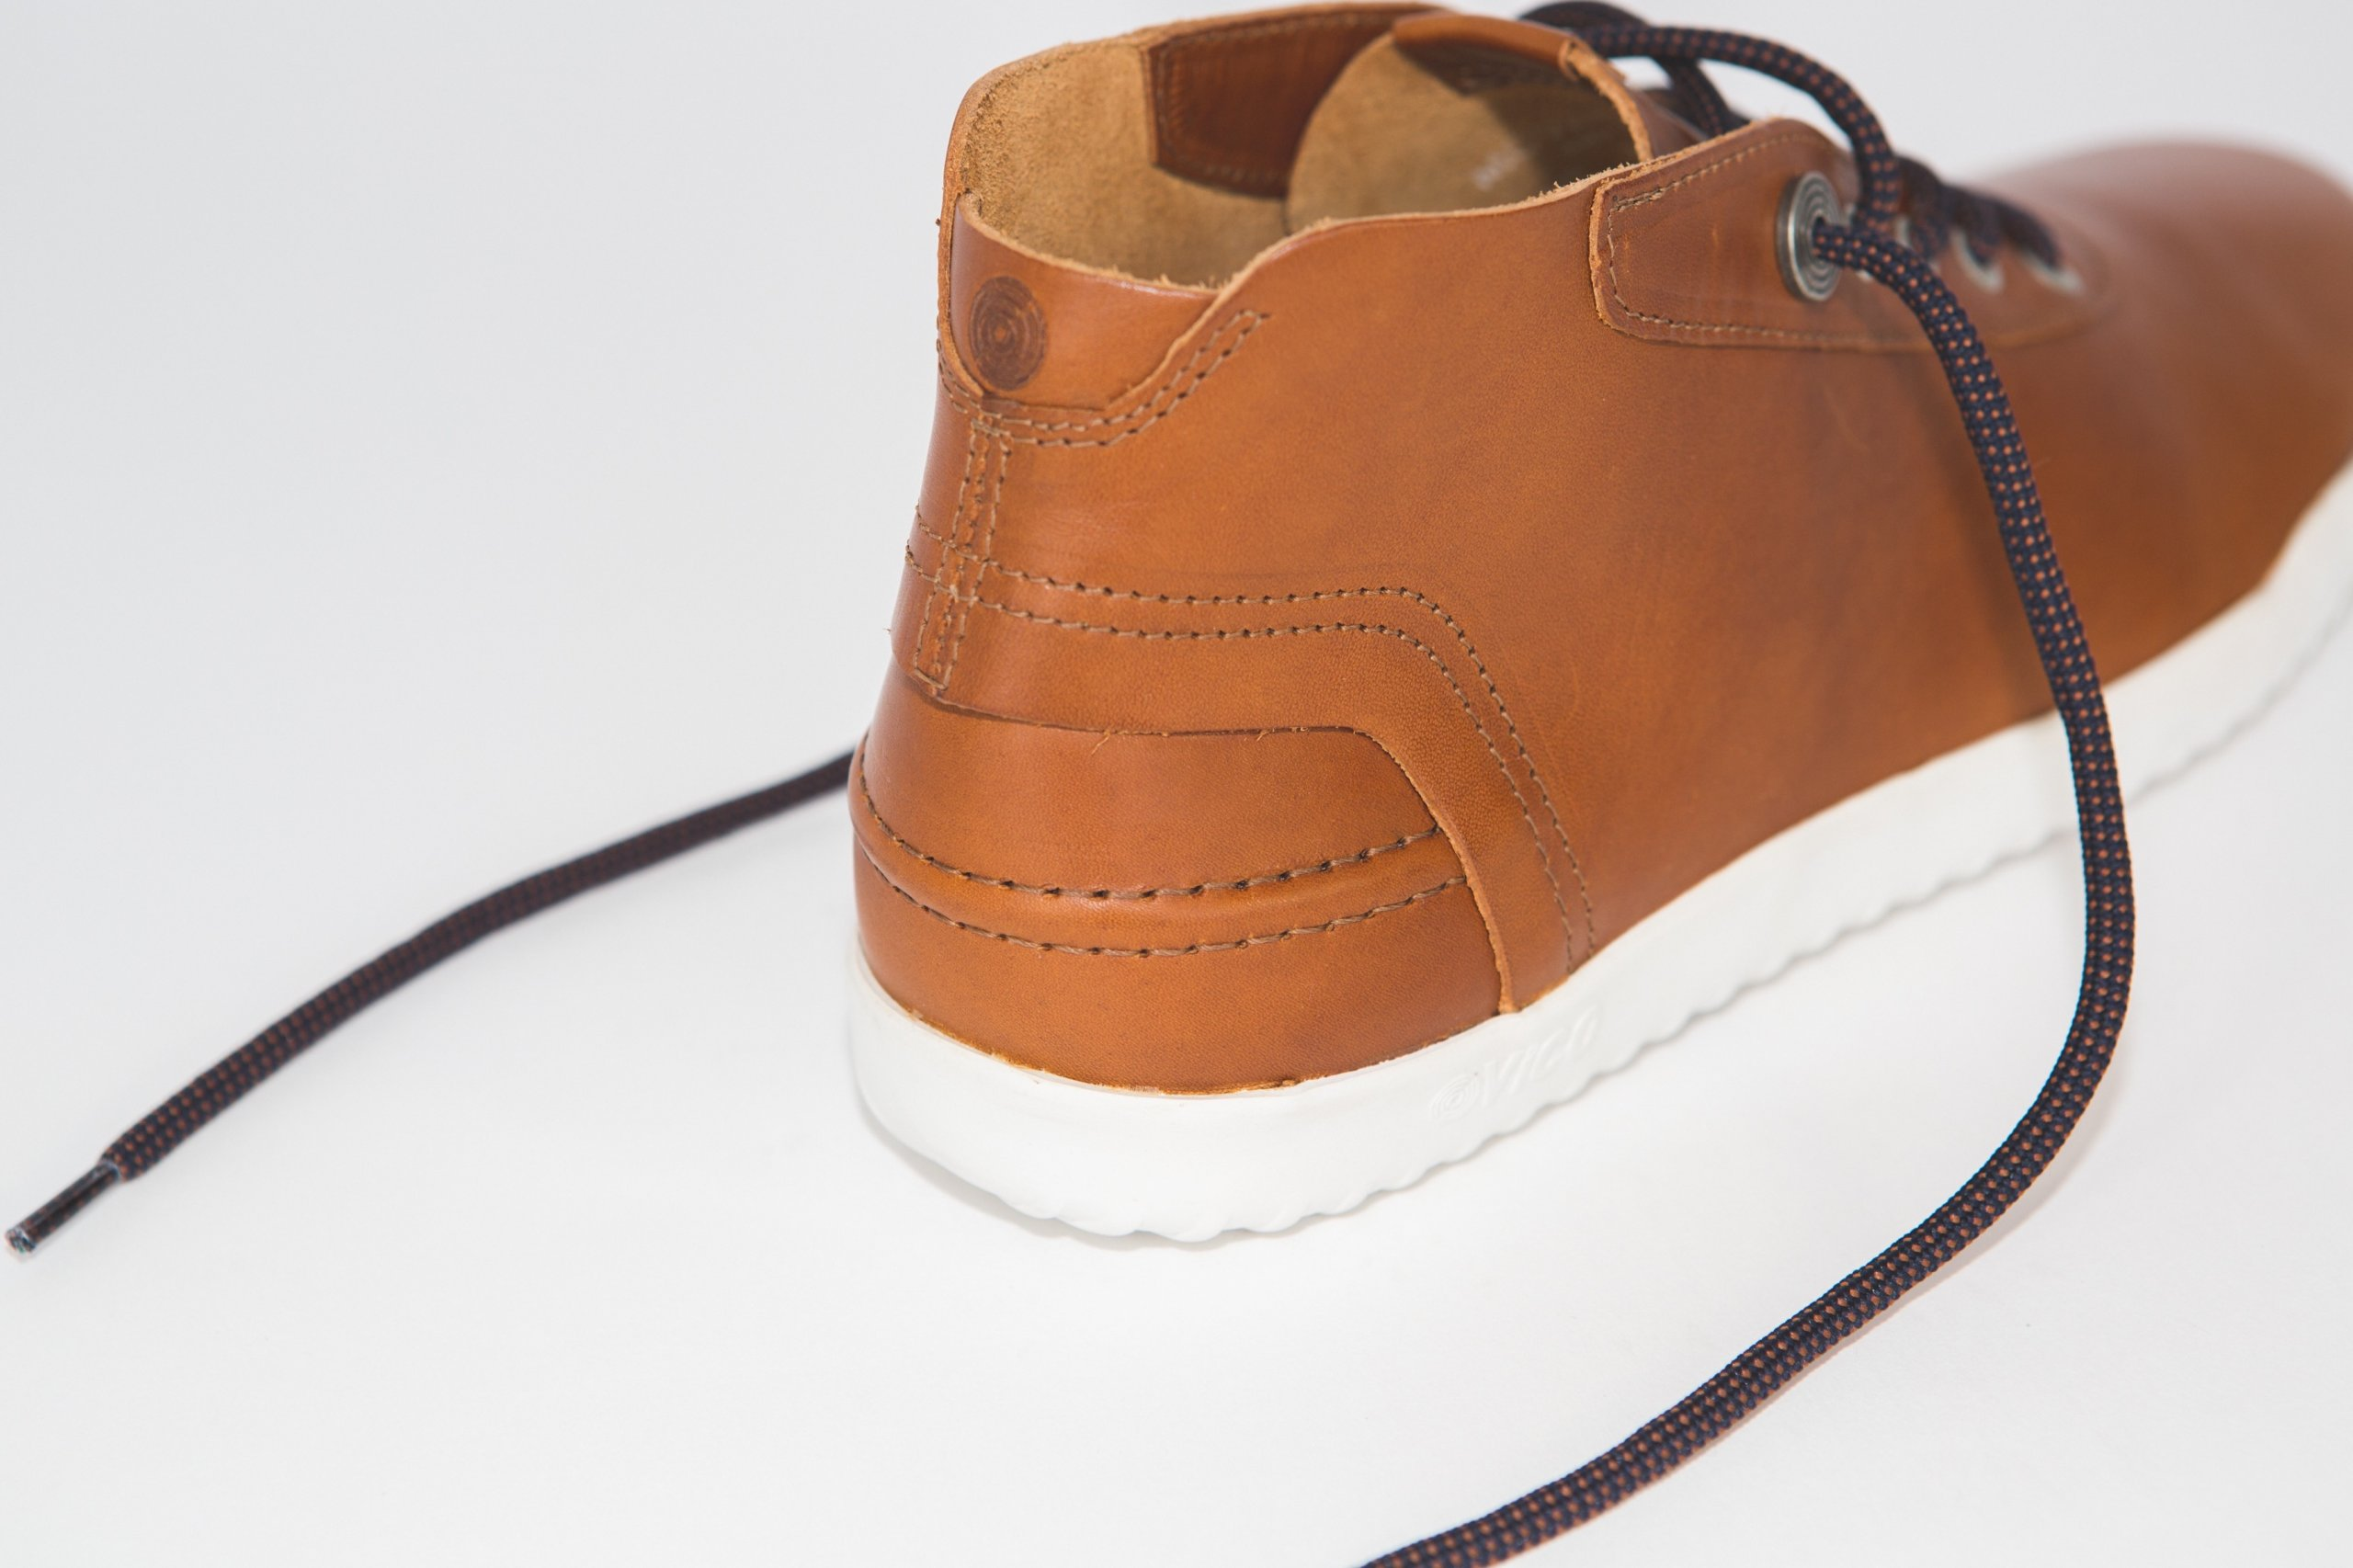 altona black singles The altona was developed because we wanted to create a shoe which could be the altona is constructed from a single piece of leather on the altona | black (men.